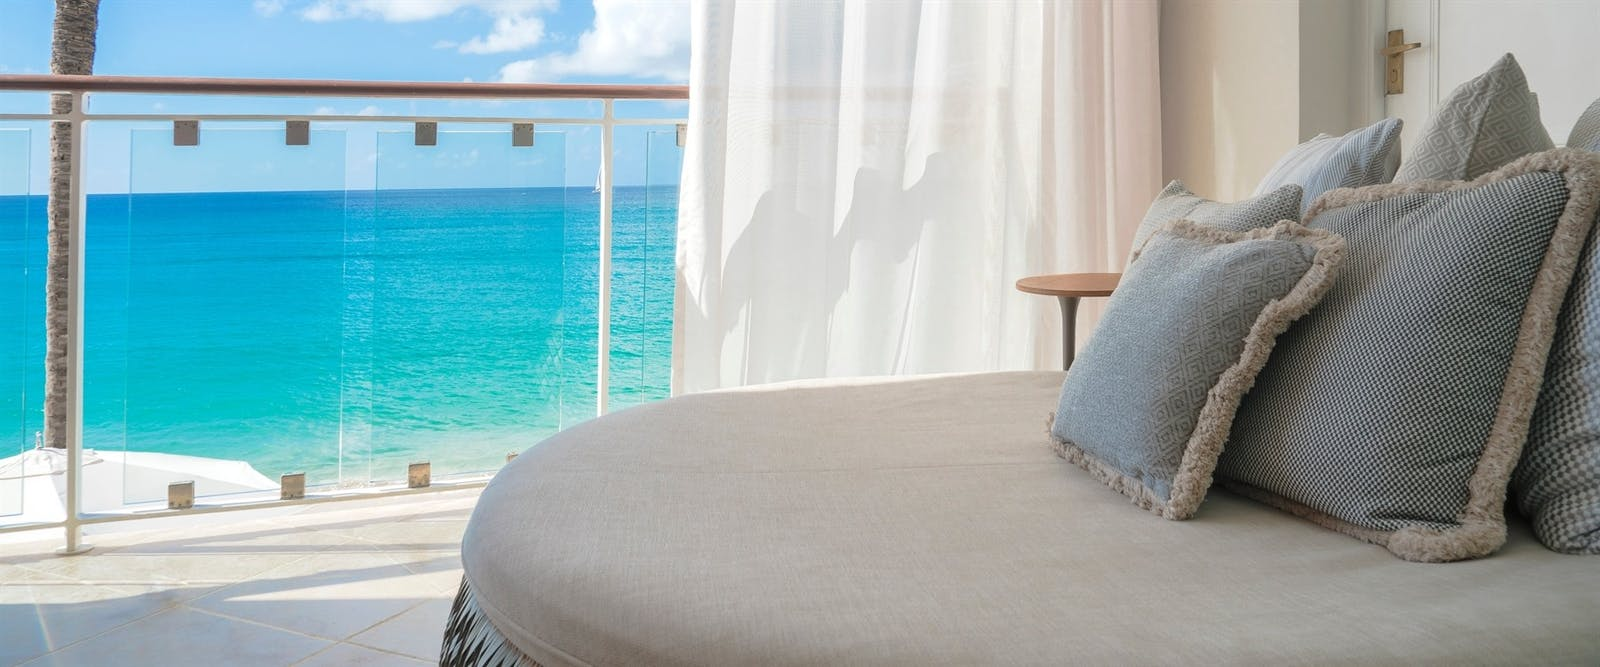 Signature and Luxury Oceanfront Sunbed at Fairmont Royal Pavilion, Barbados